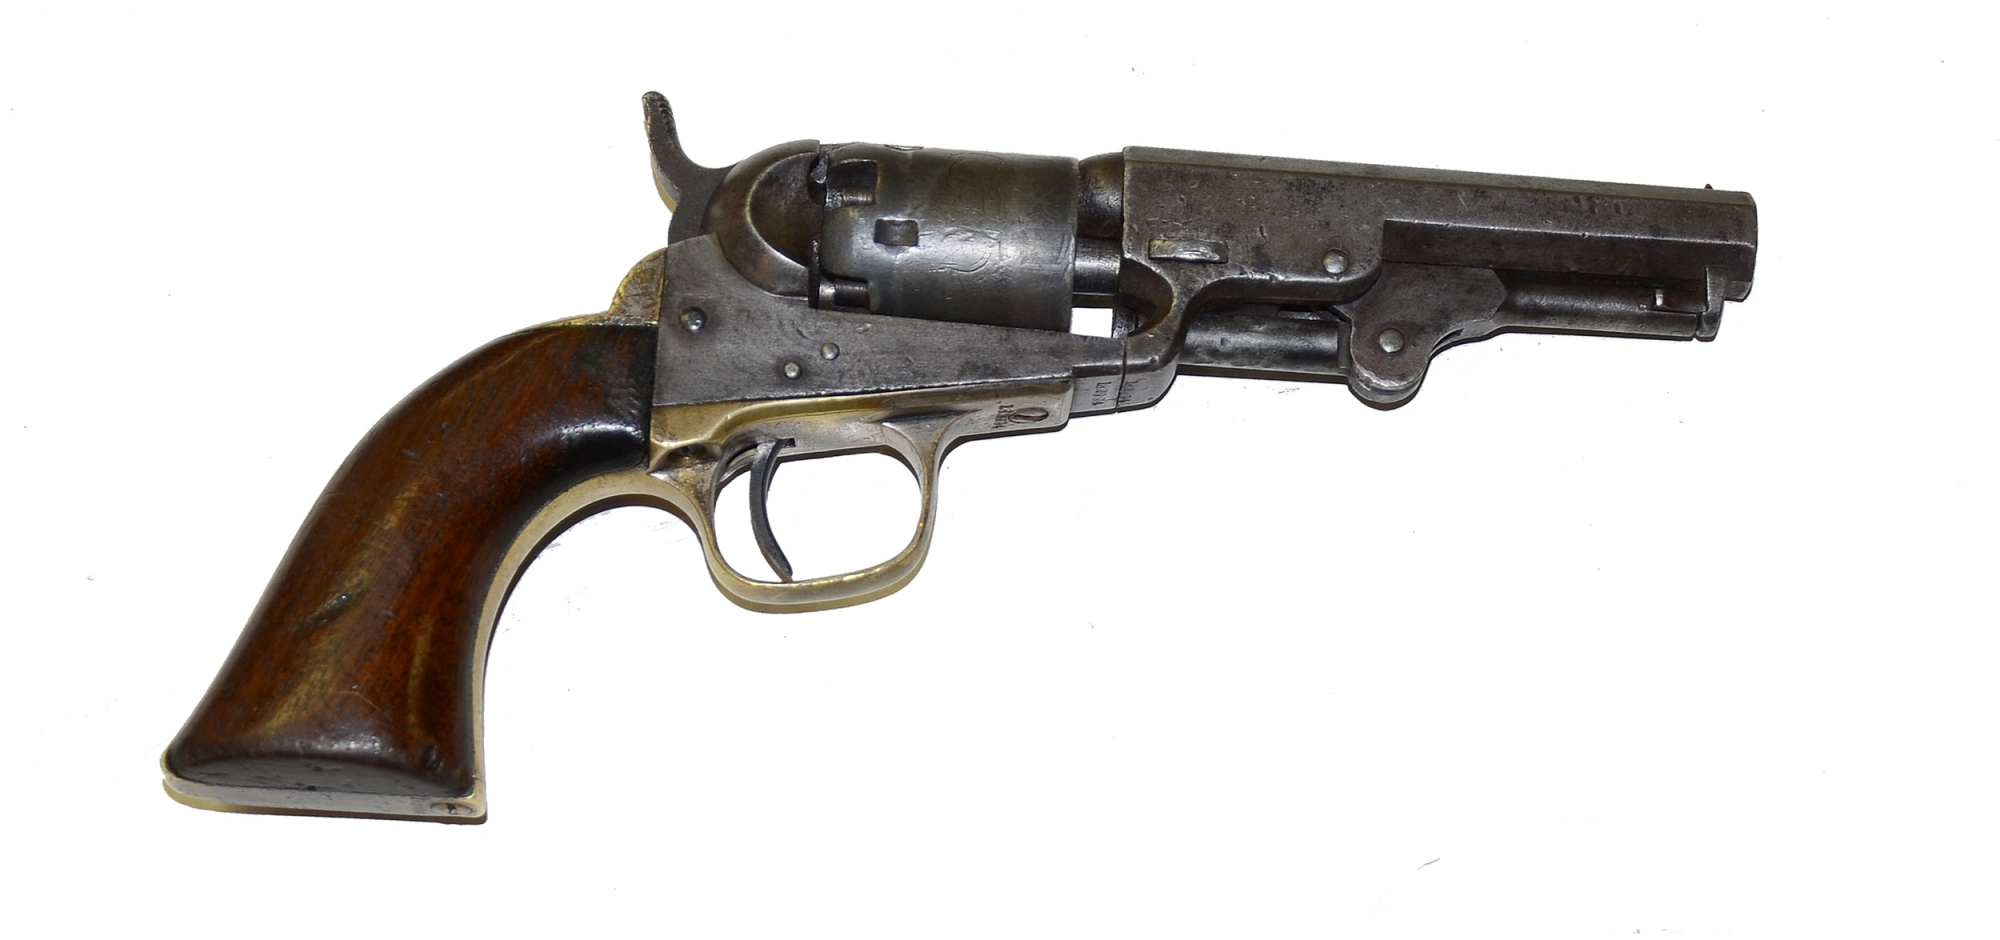 POCKET MODEL 1849 COLT WITH MATCHING SERIAL NUMBERS